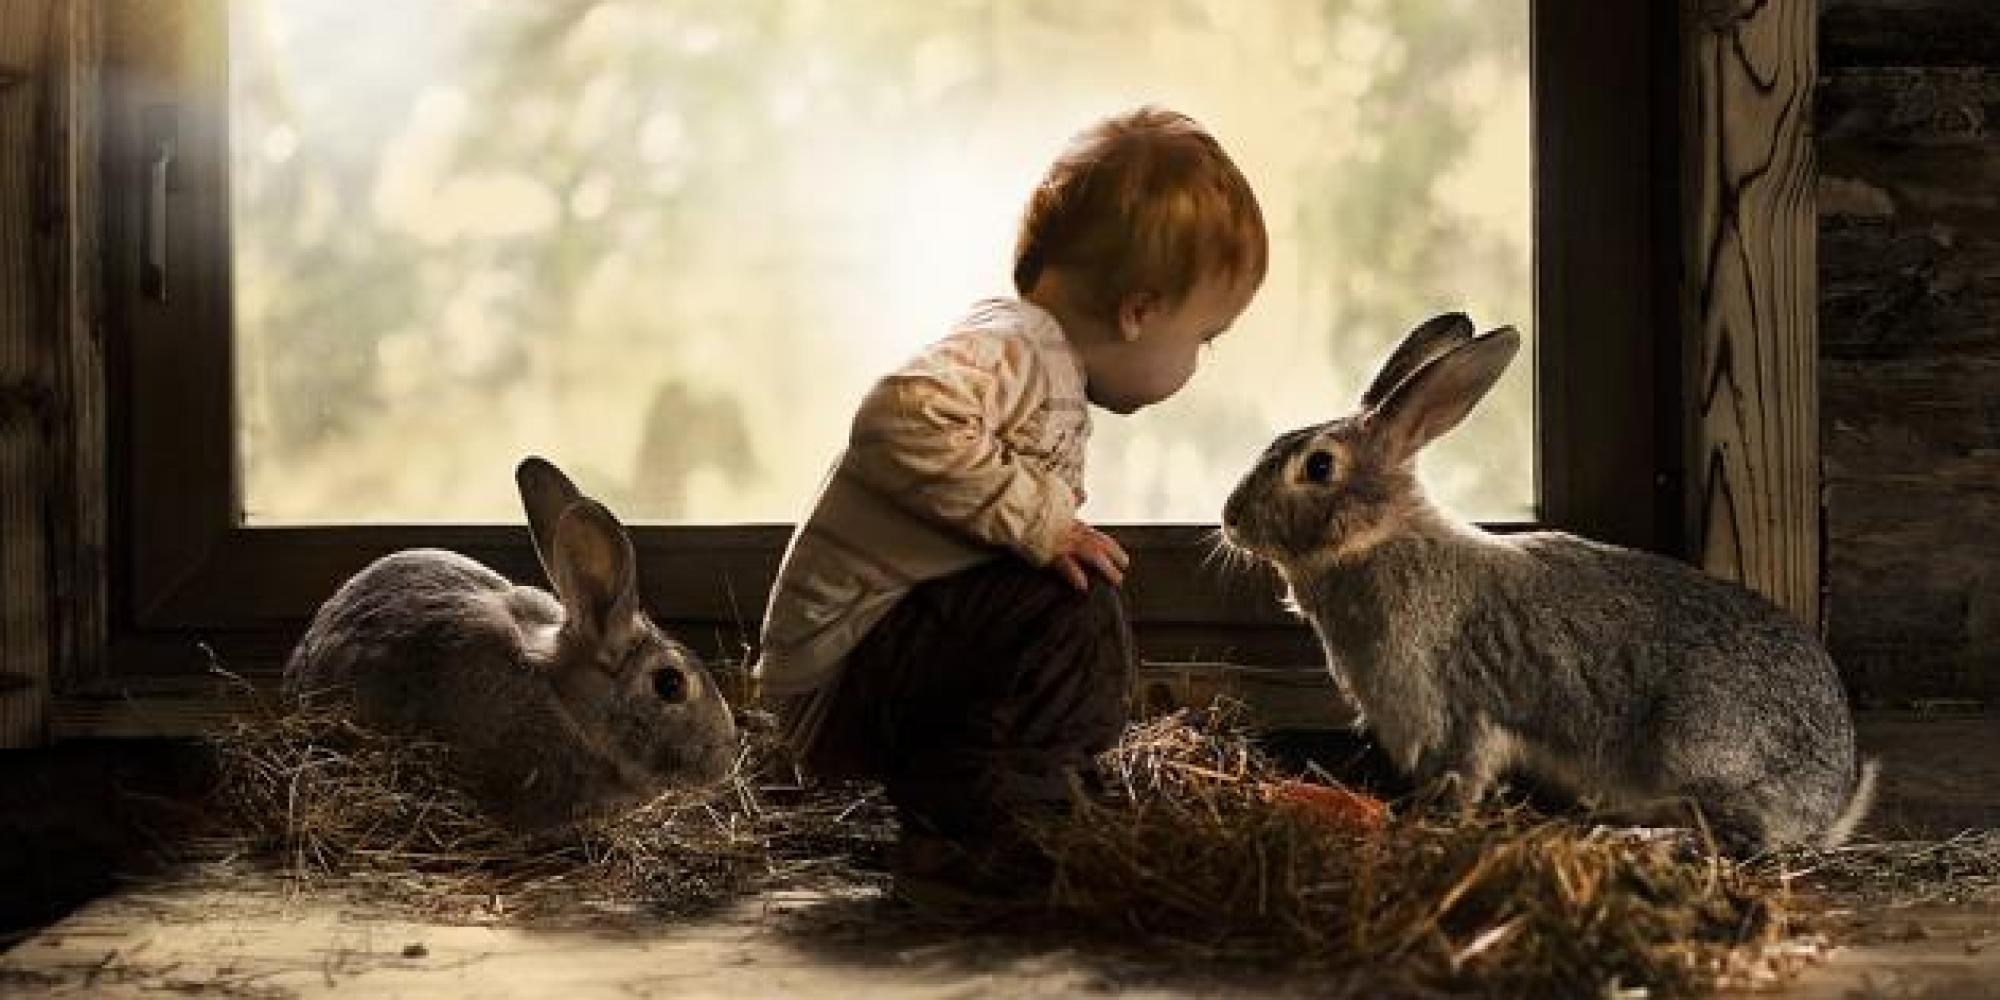 Girl Shoot Boy Wallpaper These 8 Magical Photos Of Child Animal Whisperers Will